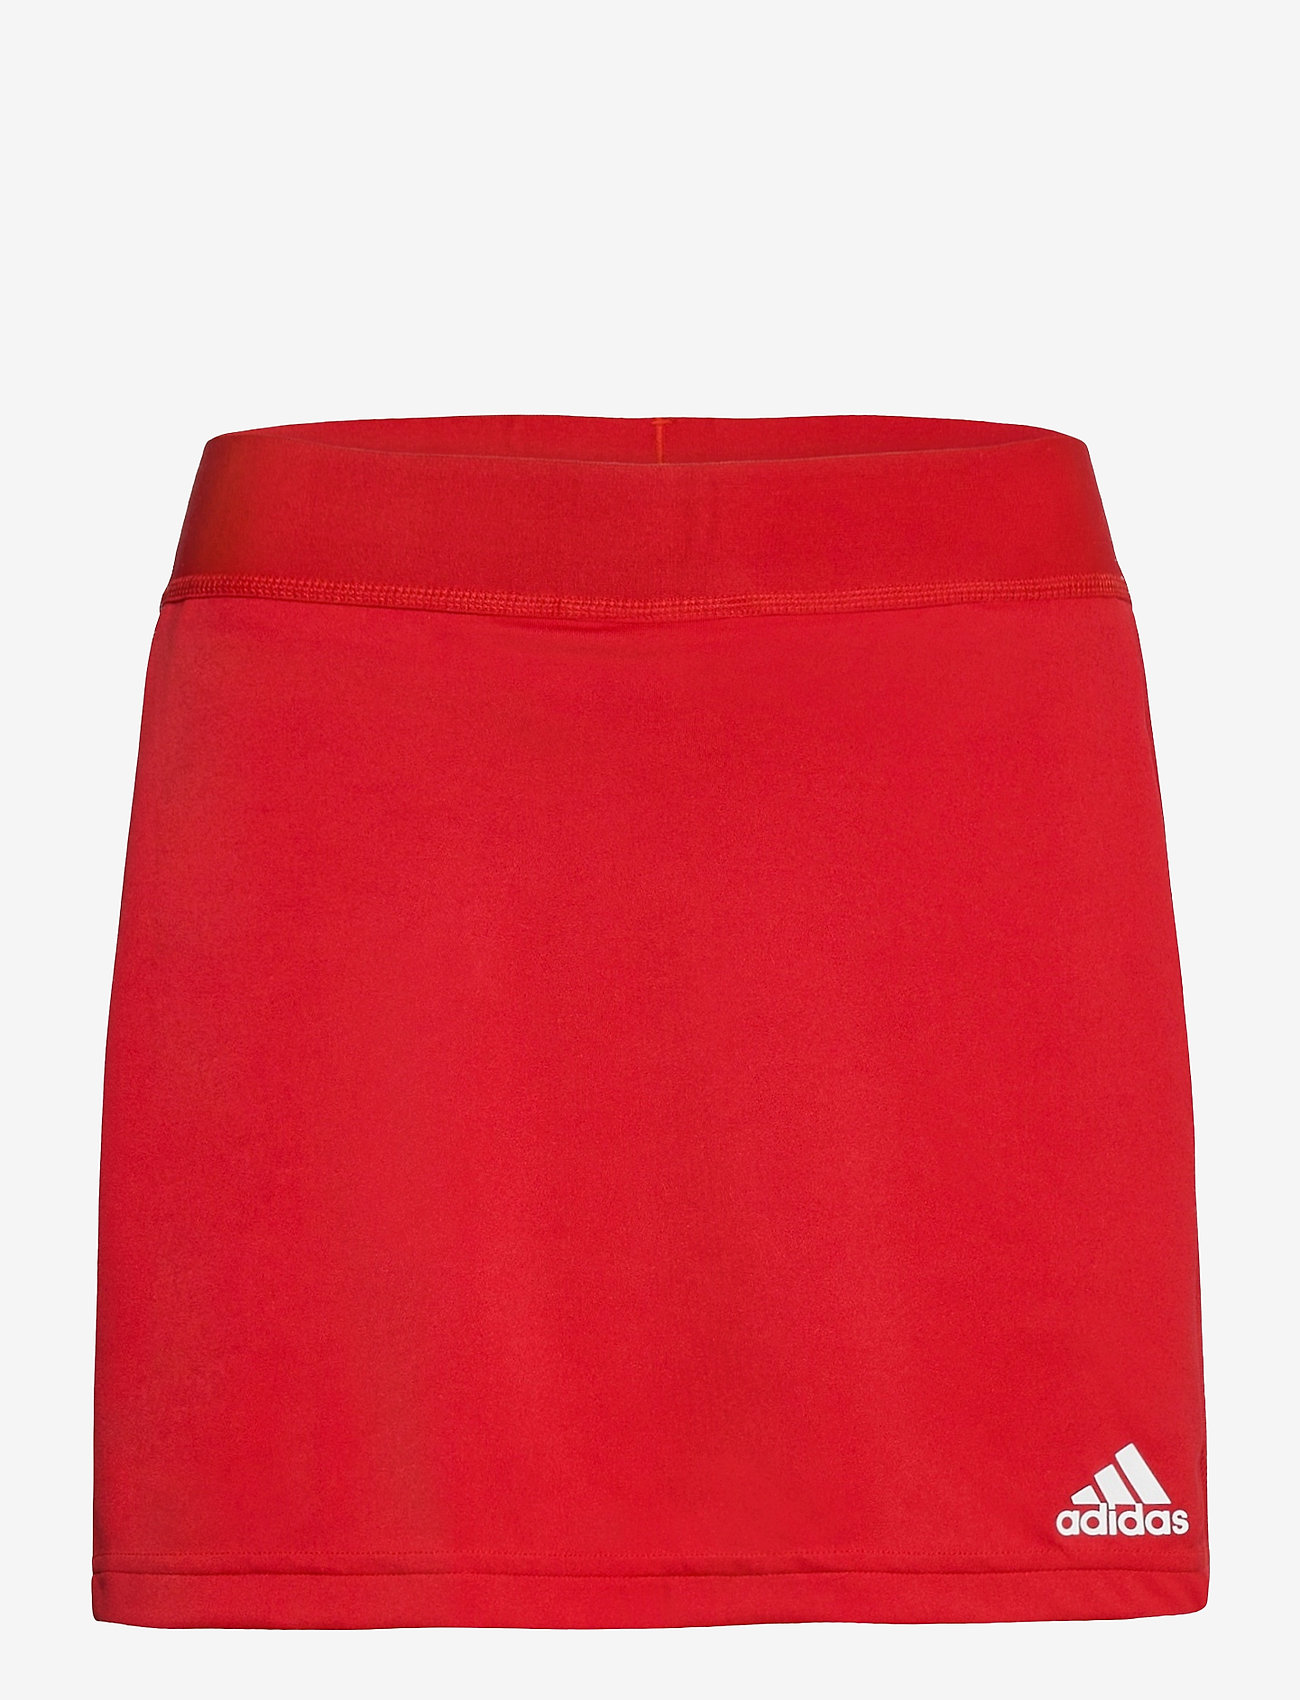 adidas Performance - Team 19 Skort W - rokjes - powred/white - 0